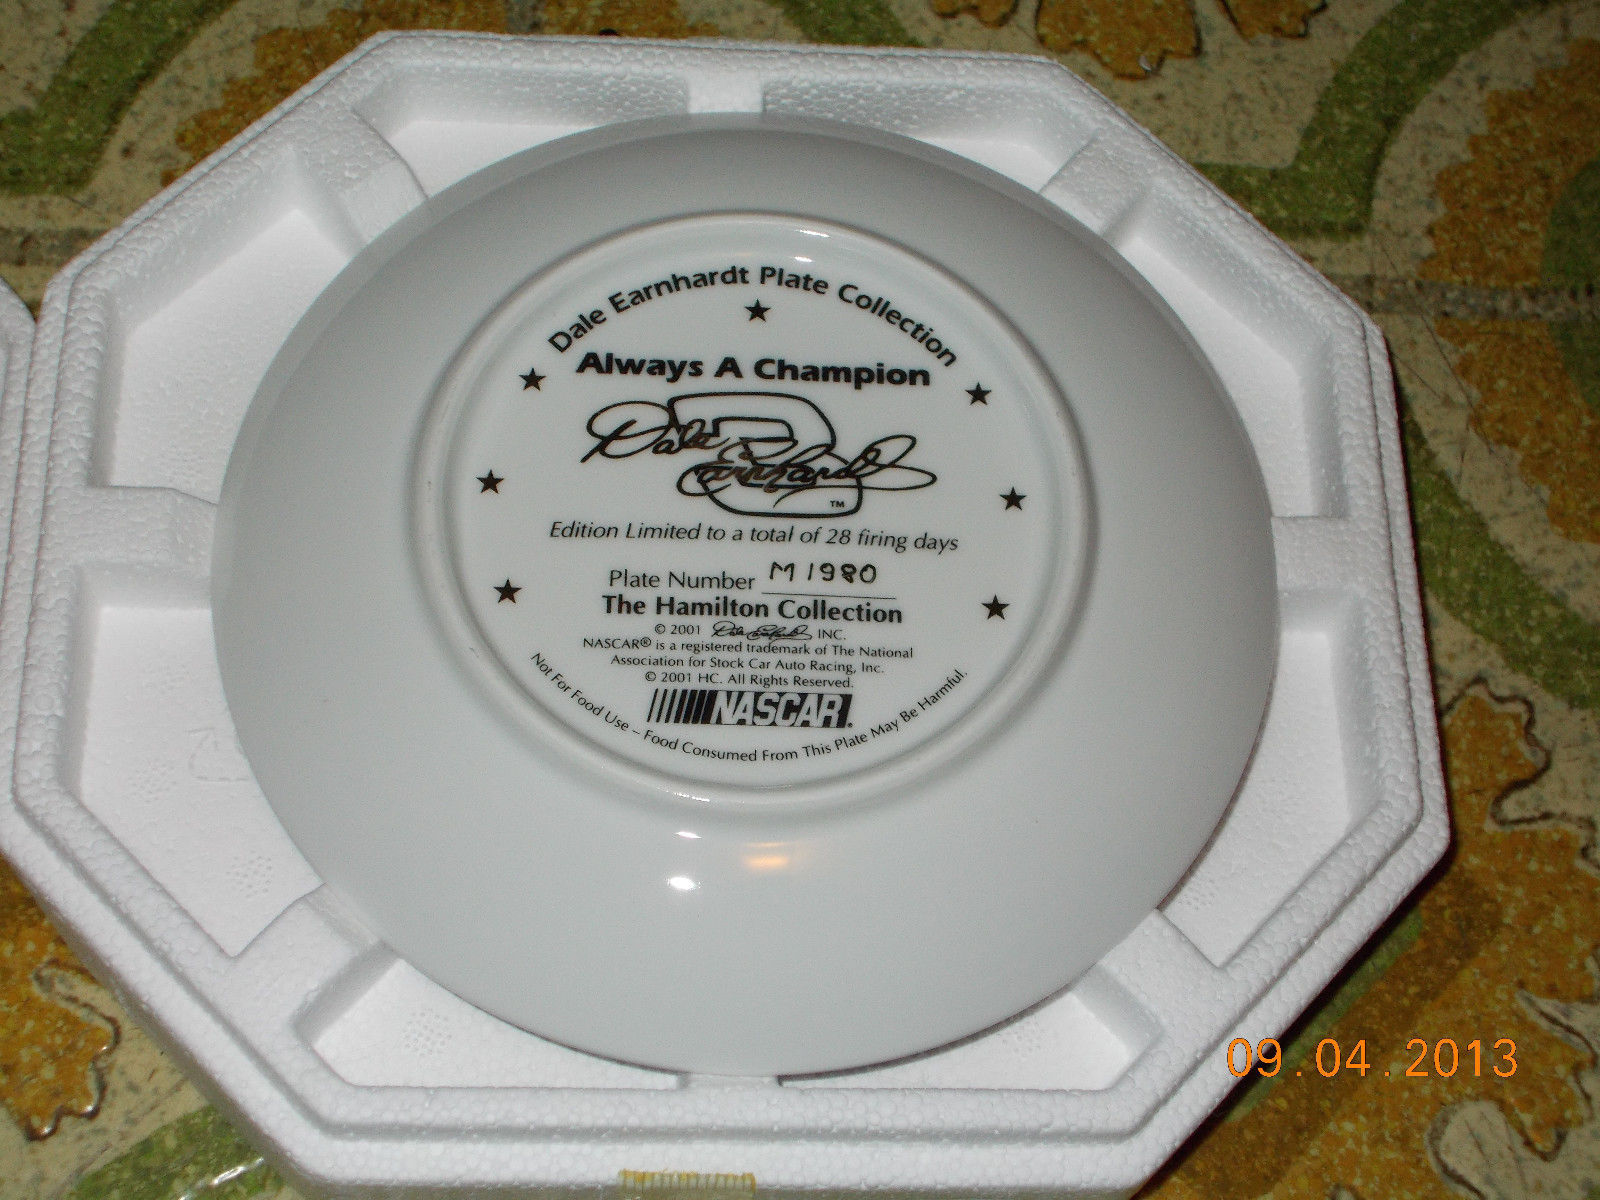 The Hamilton Collection Dale Earnhardt Sr. #3 Nascar Collectors Plate image 2